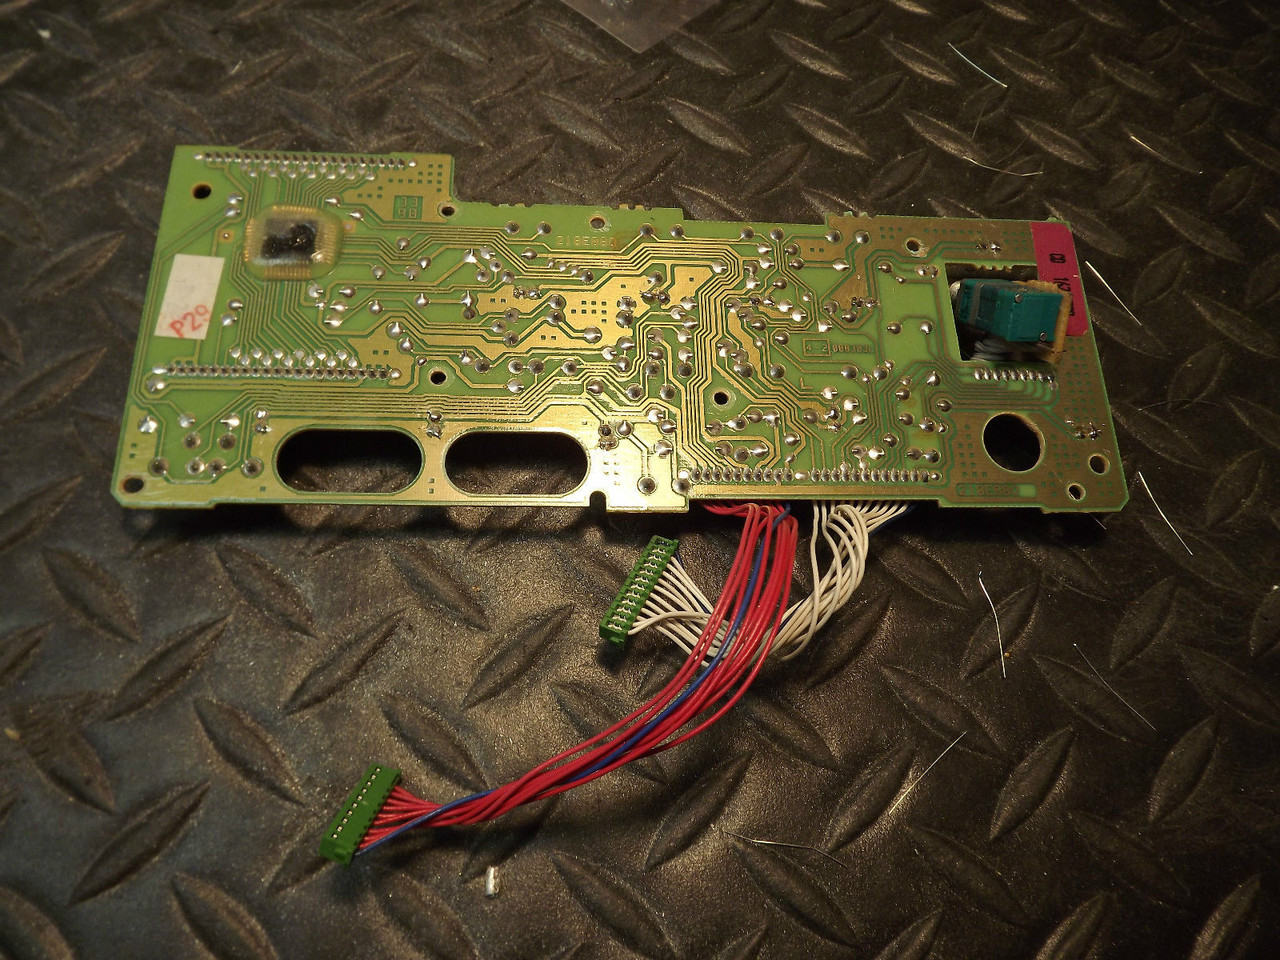 small resolution of http d3d71ba2asa5oz cloudfront net 12015082 images 199519961997199819 75243 1factoryradio yes chev 4